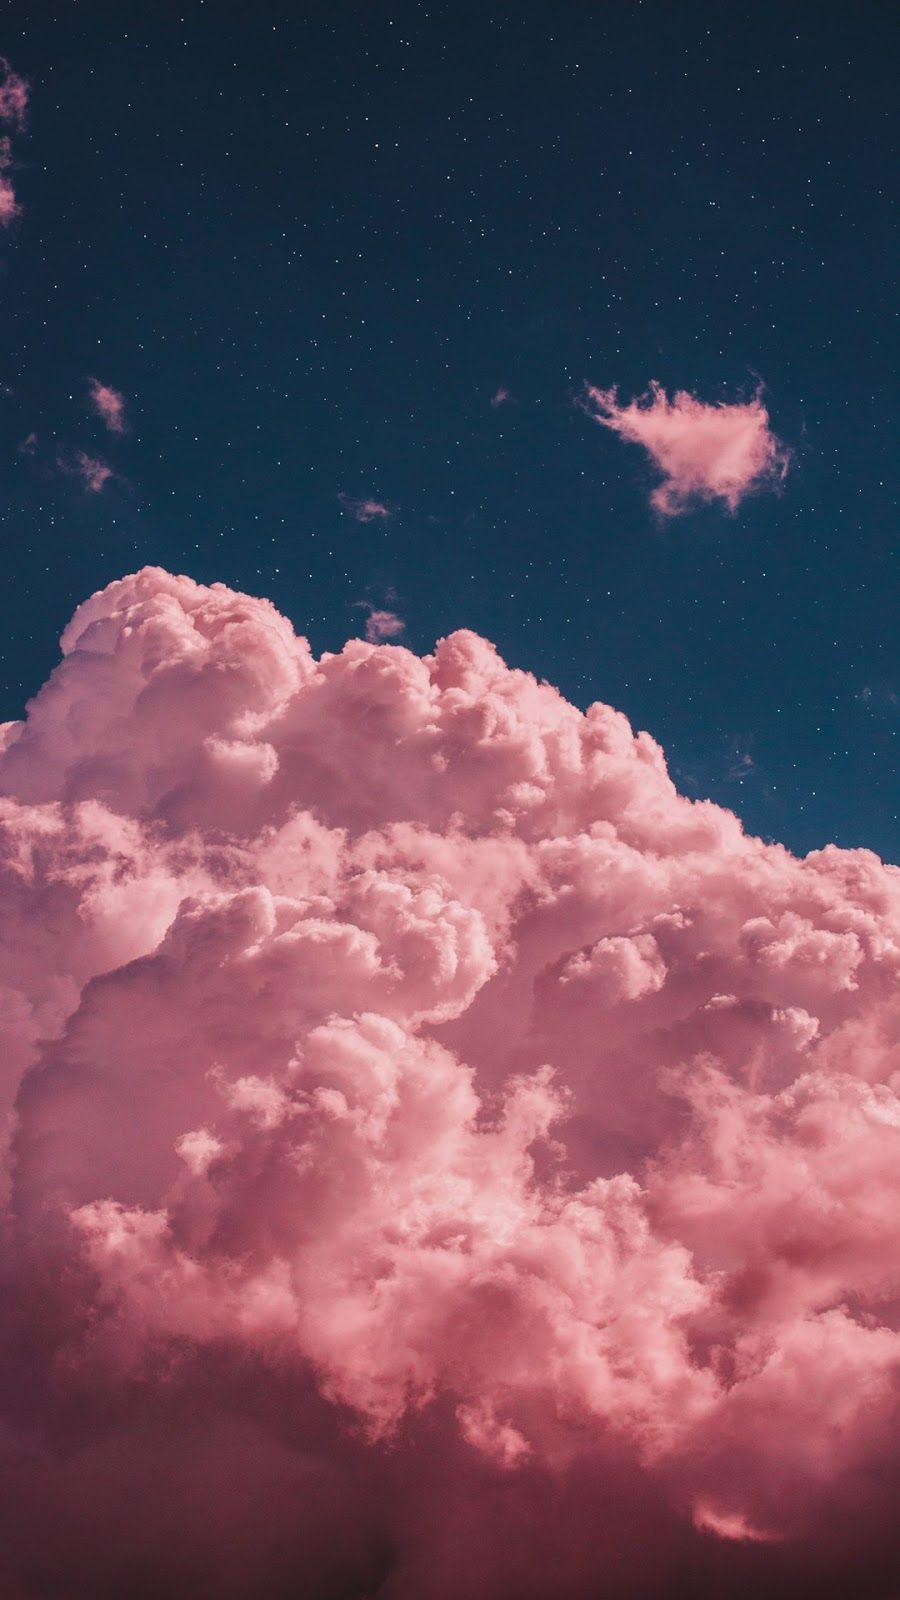 How To Create Your Own Pink Clouds Wallpaper Image